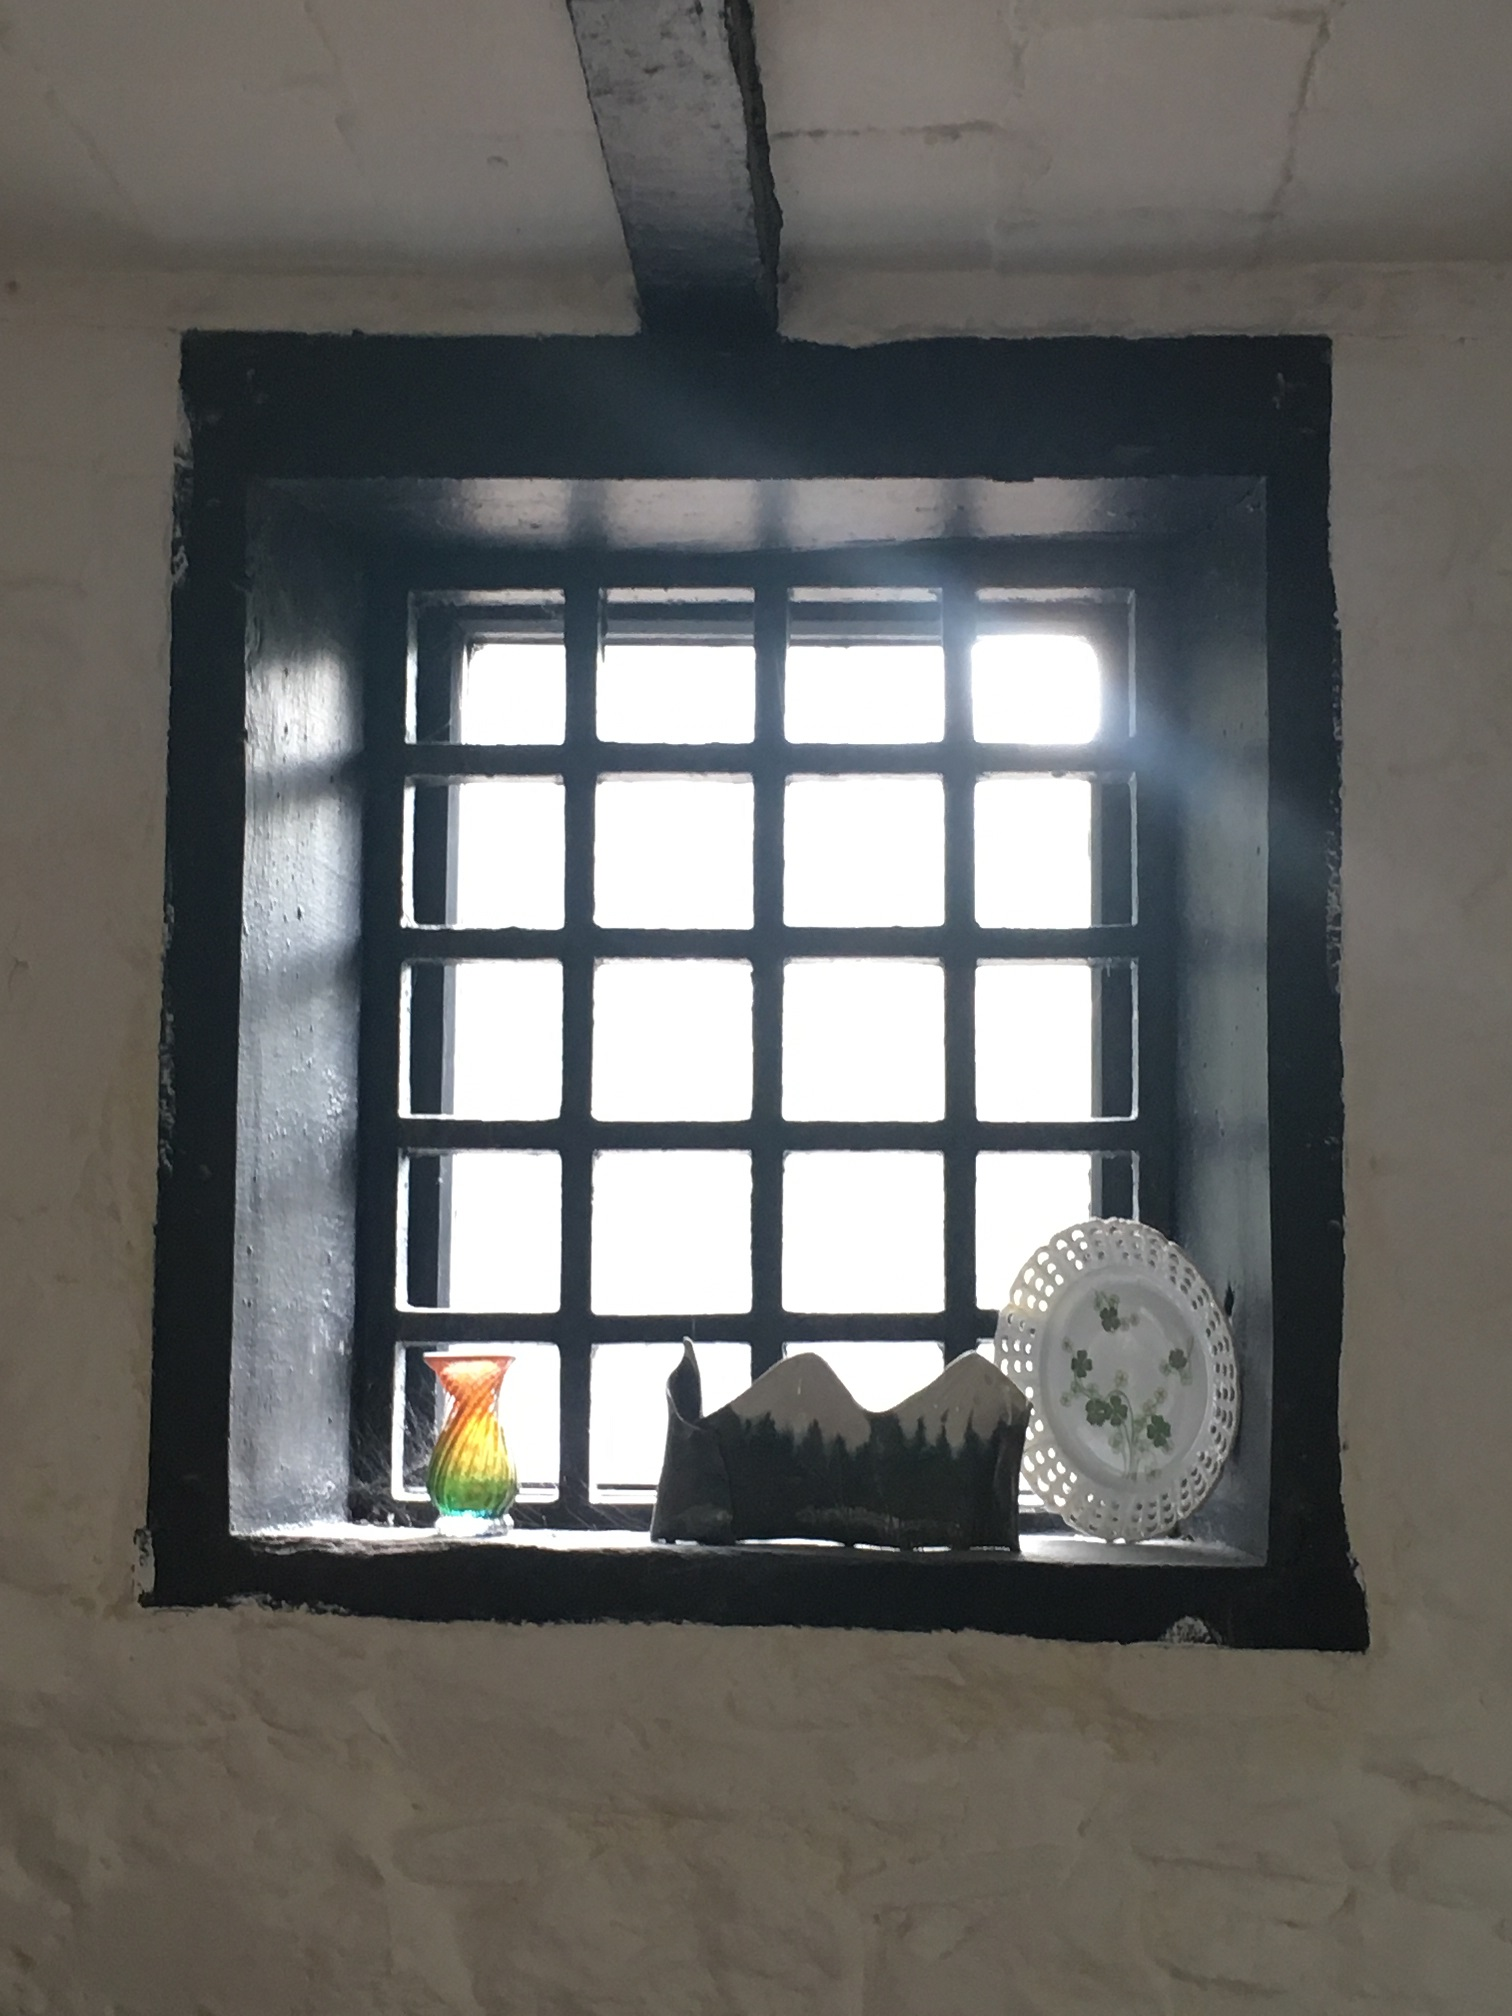 'New' window with original bars. The bars were moved to this window during a side extension to the house. The old window was demolished.